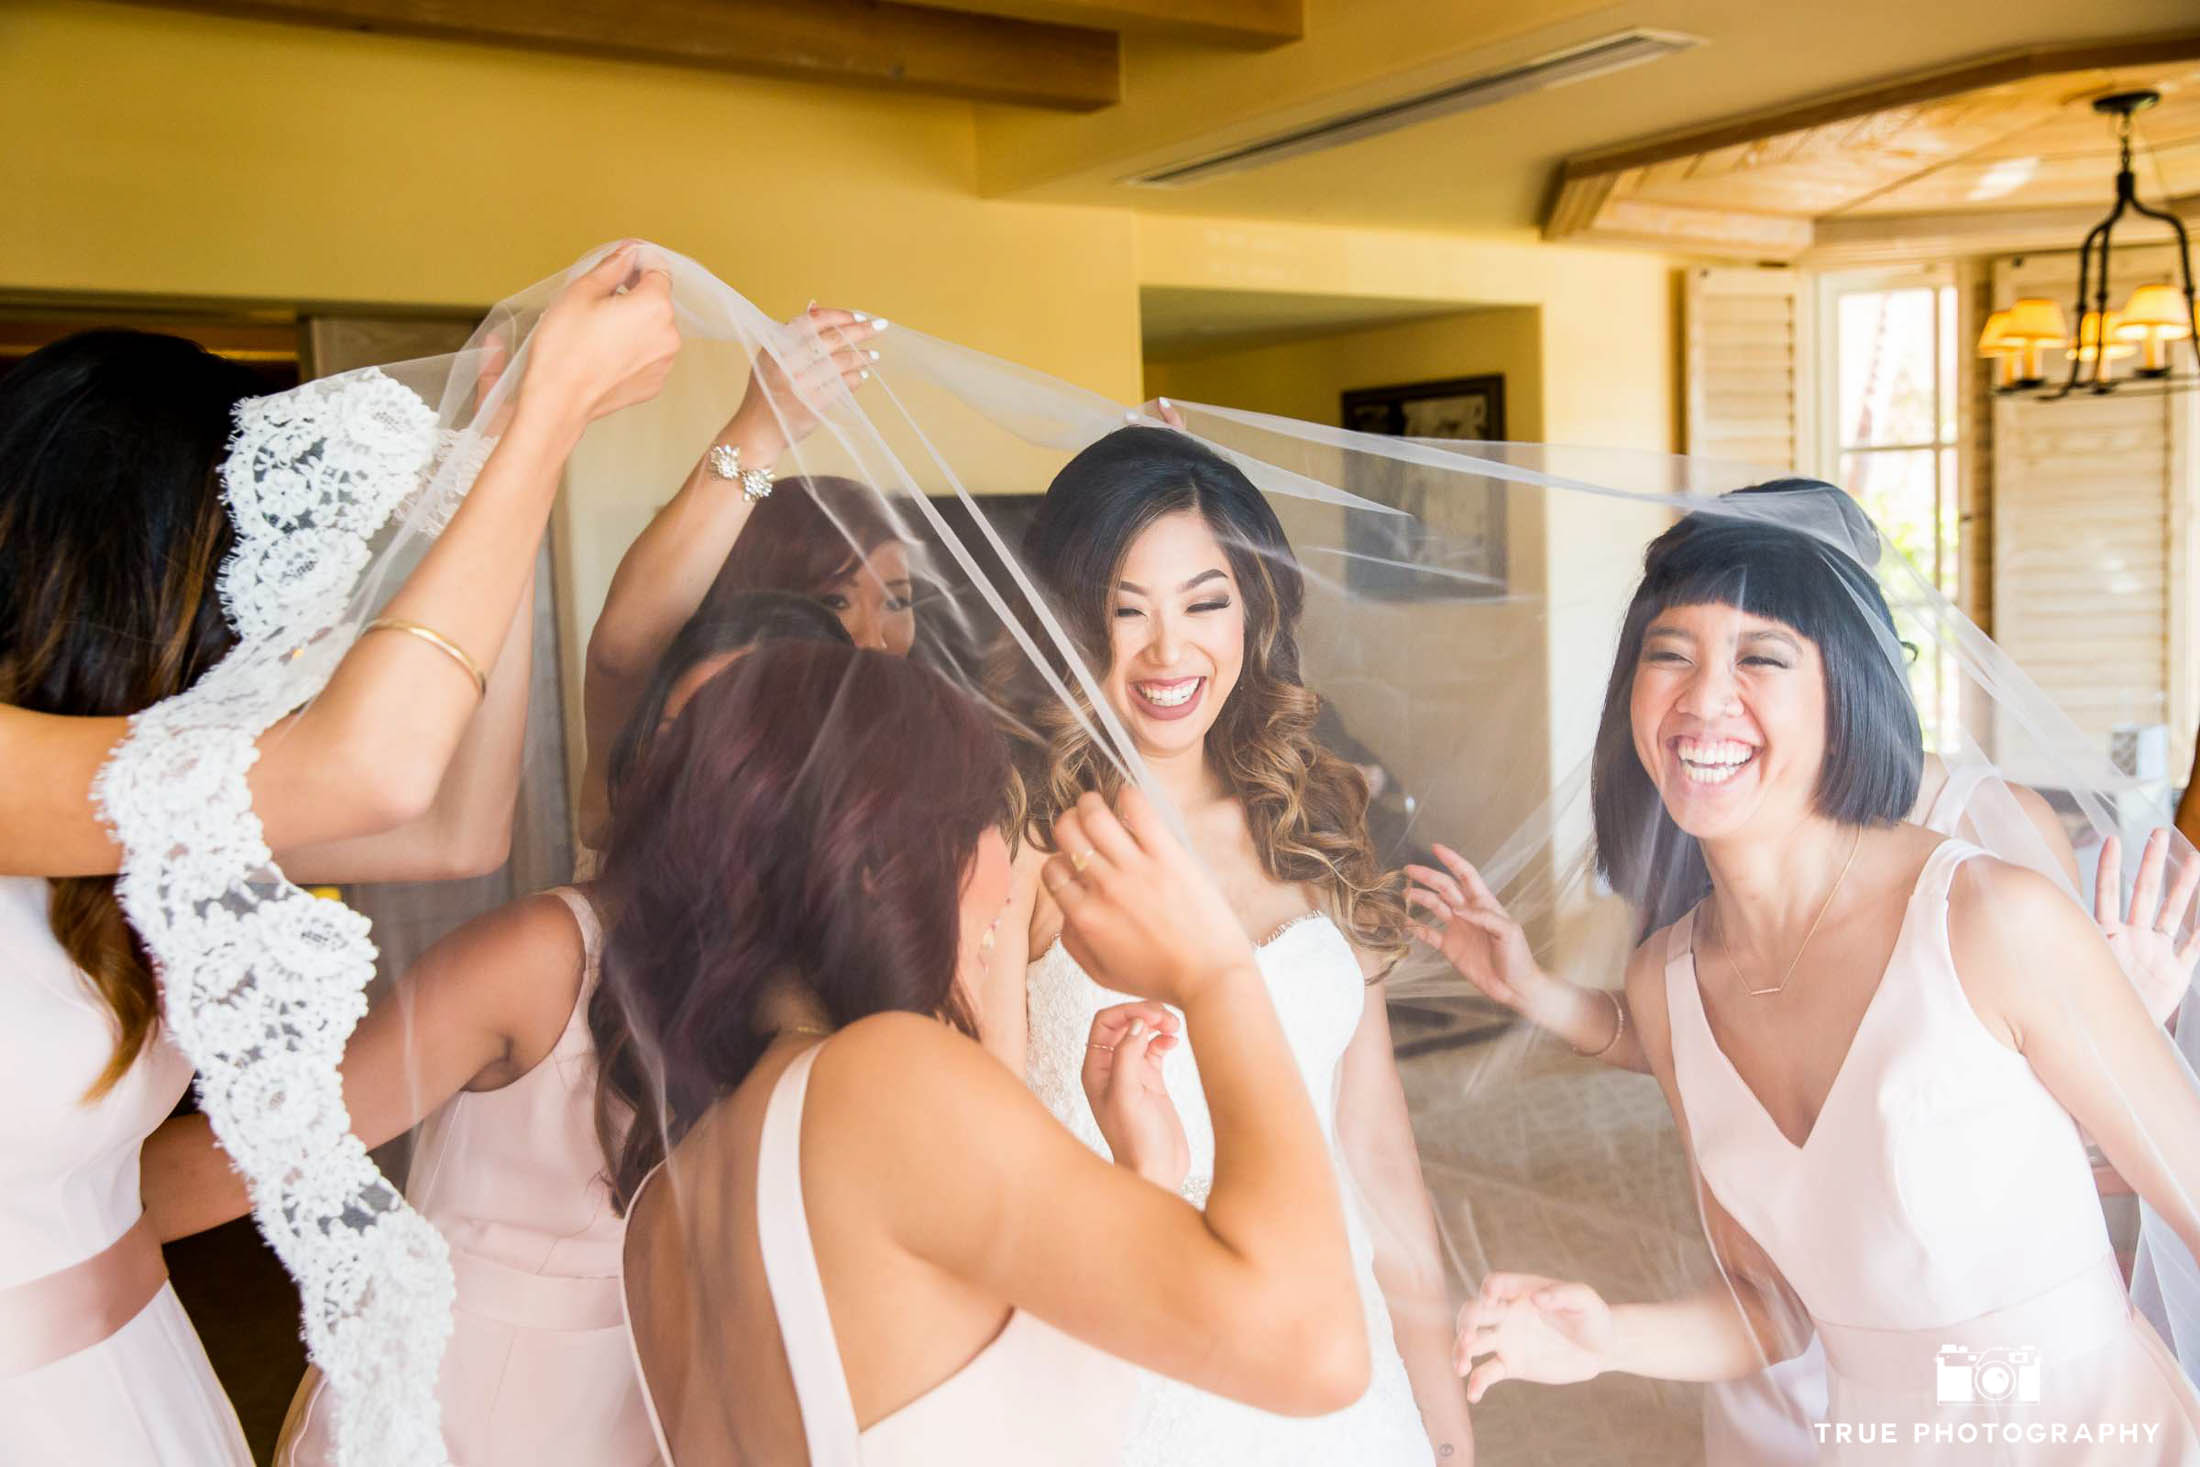 Bride and bridesmaids have fun while getting ready.